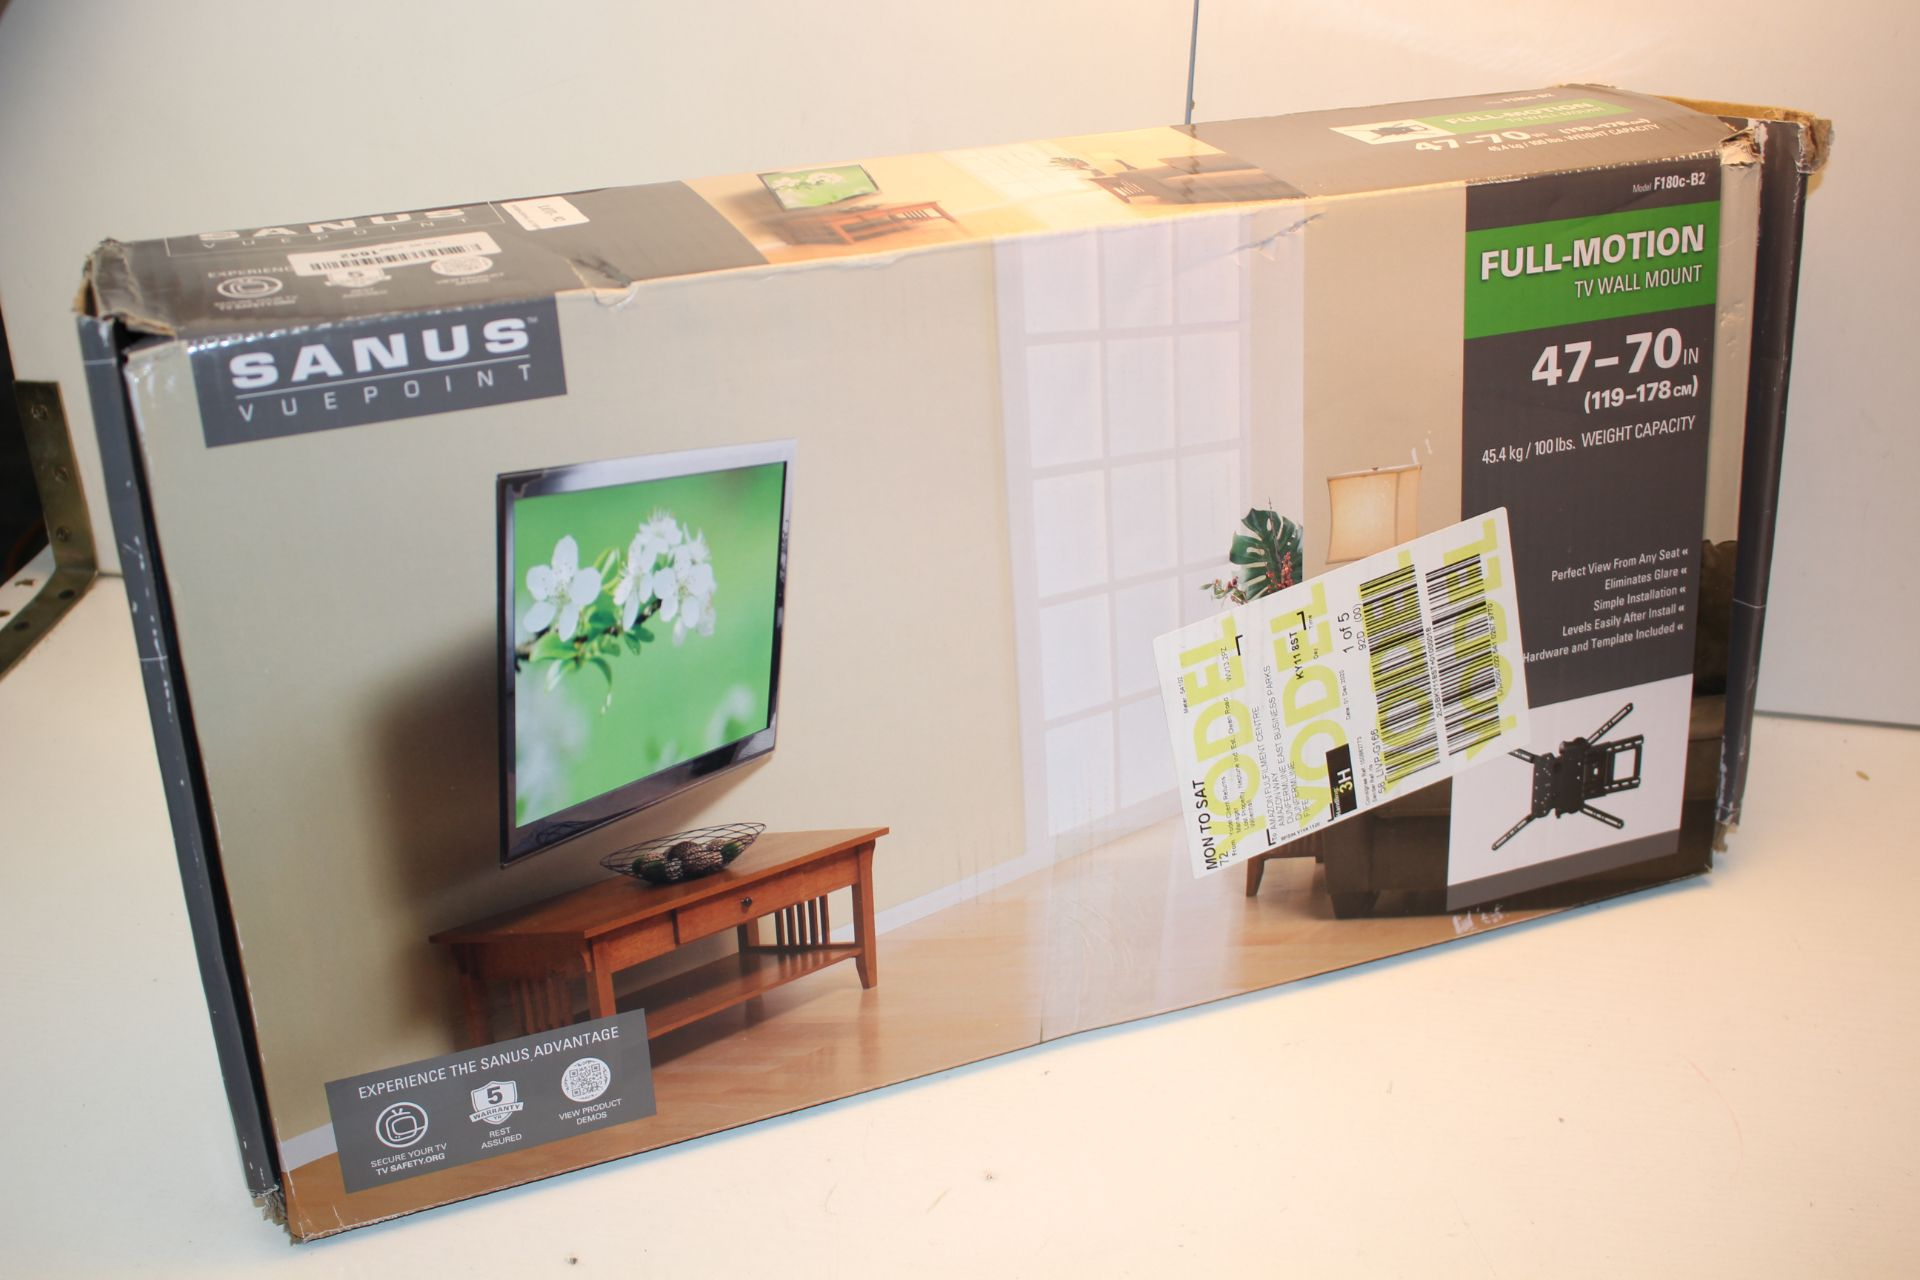 BOXED SANUS VUEPOINT FULL-MOTION TV WALL MOUNT 47-70INCondition ReportAppraisal Available on